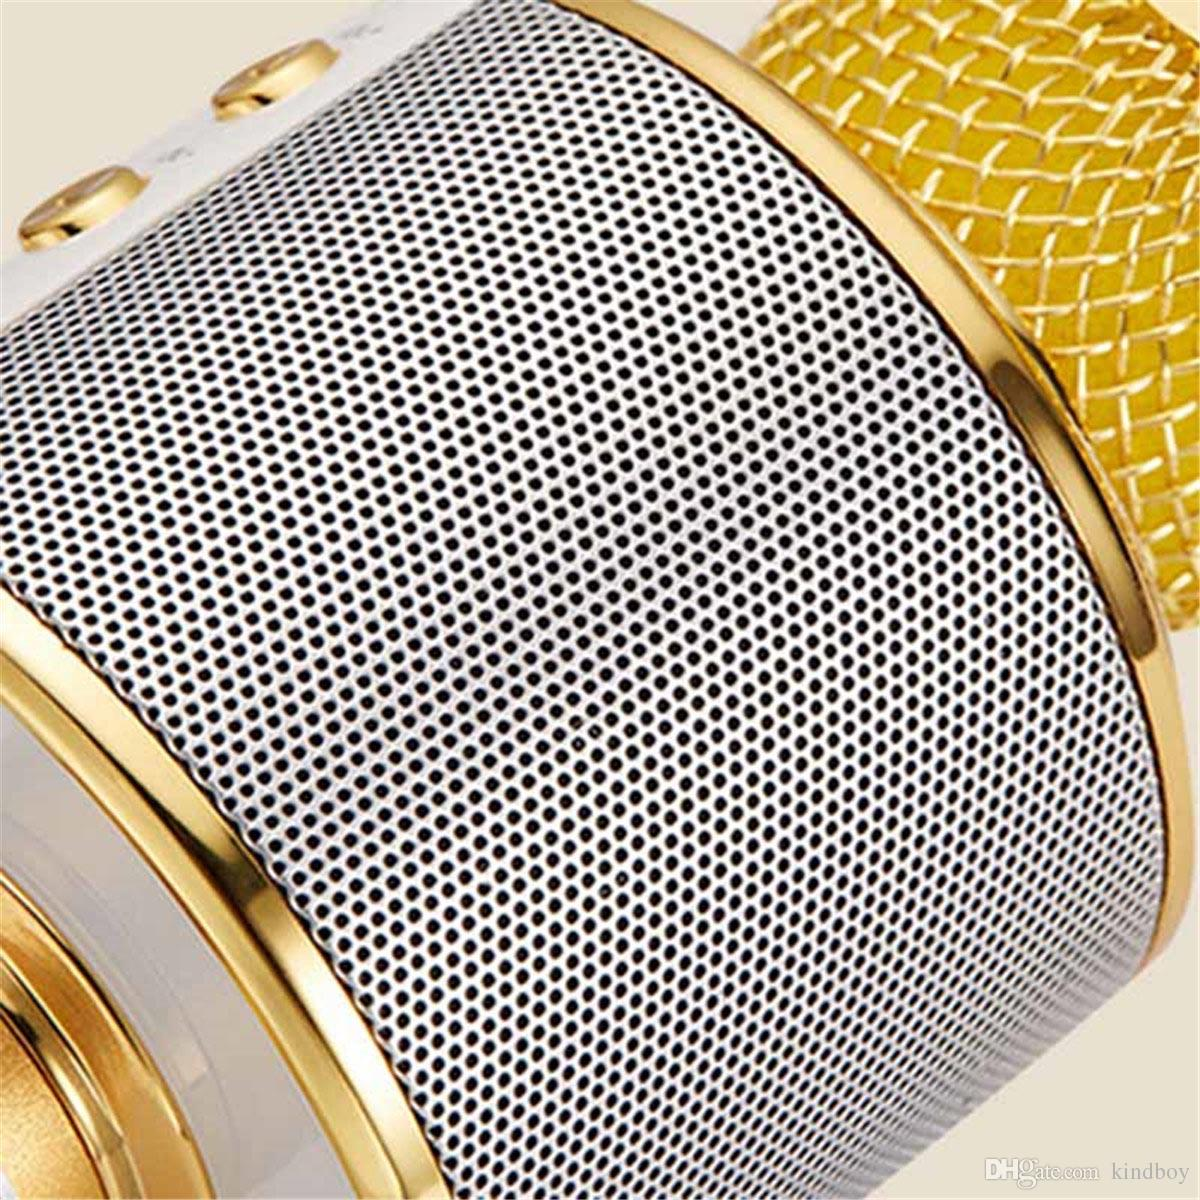 WS-858 Microphone Wireless Speaker Portable Karaoke Hifi Bluetooth Player WS858 For iphone 6 6s 7 ipad Samsung Tablets PC better than Q7 Q9